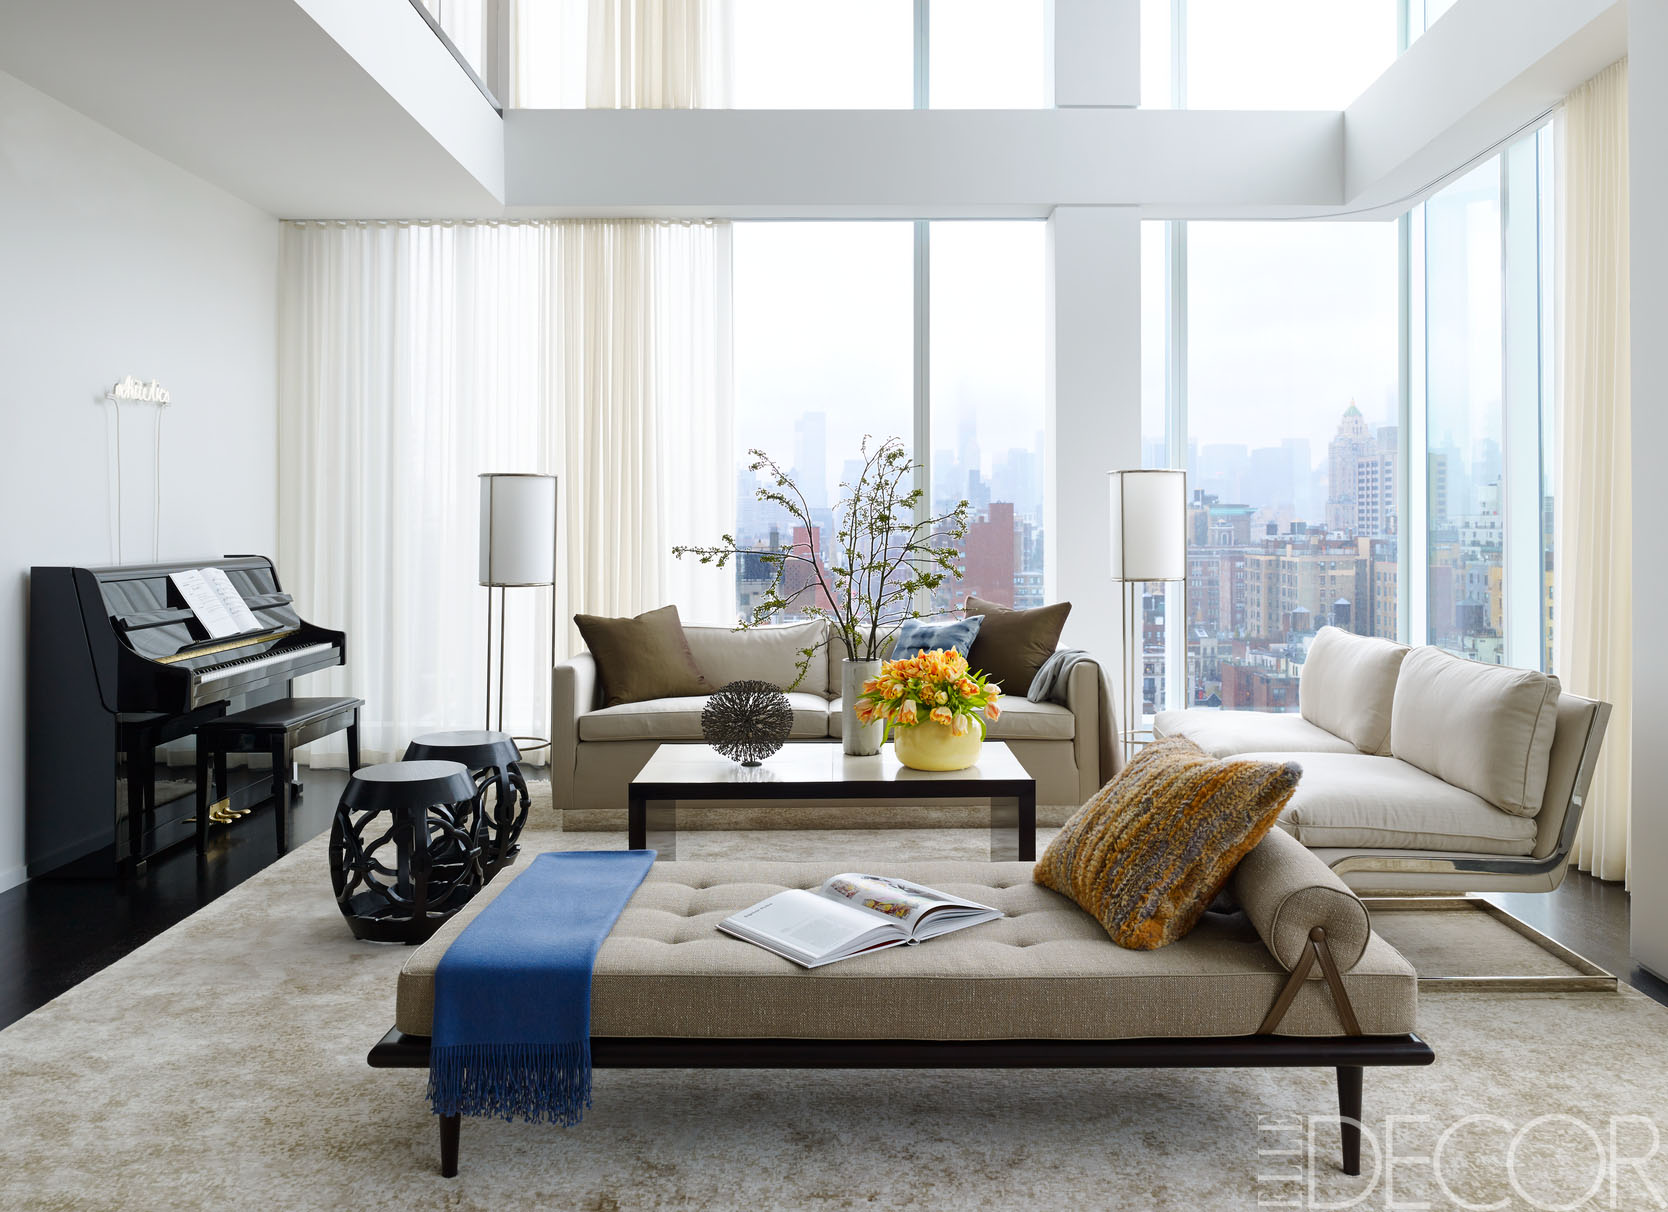 Good HOUSE TOUR A New York Penthouse Shows The Cozy Side Of Modern Decor